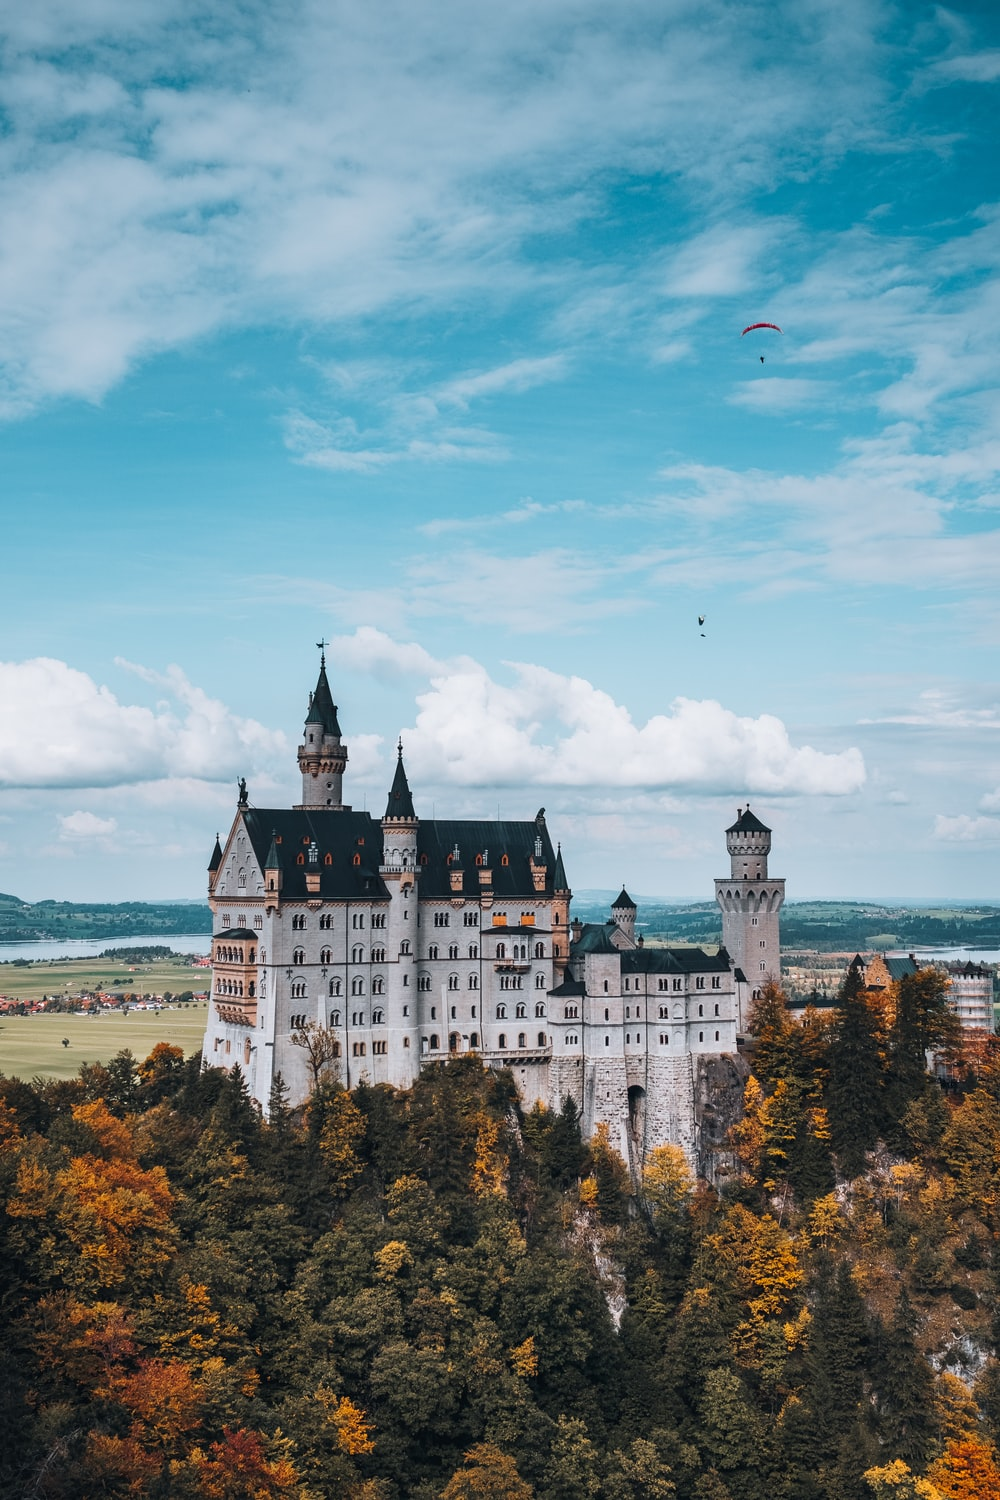 white and blue castle near body of water during daytime